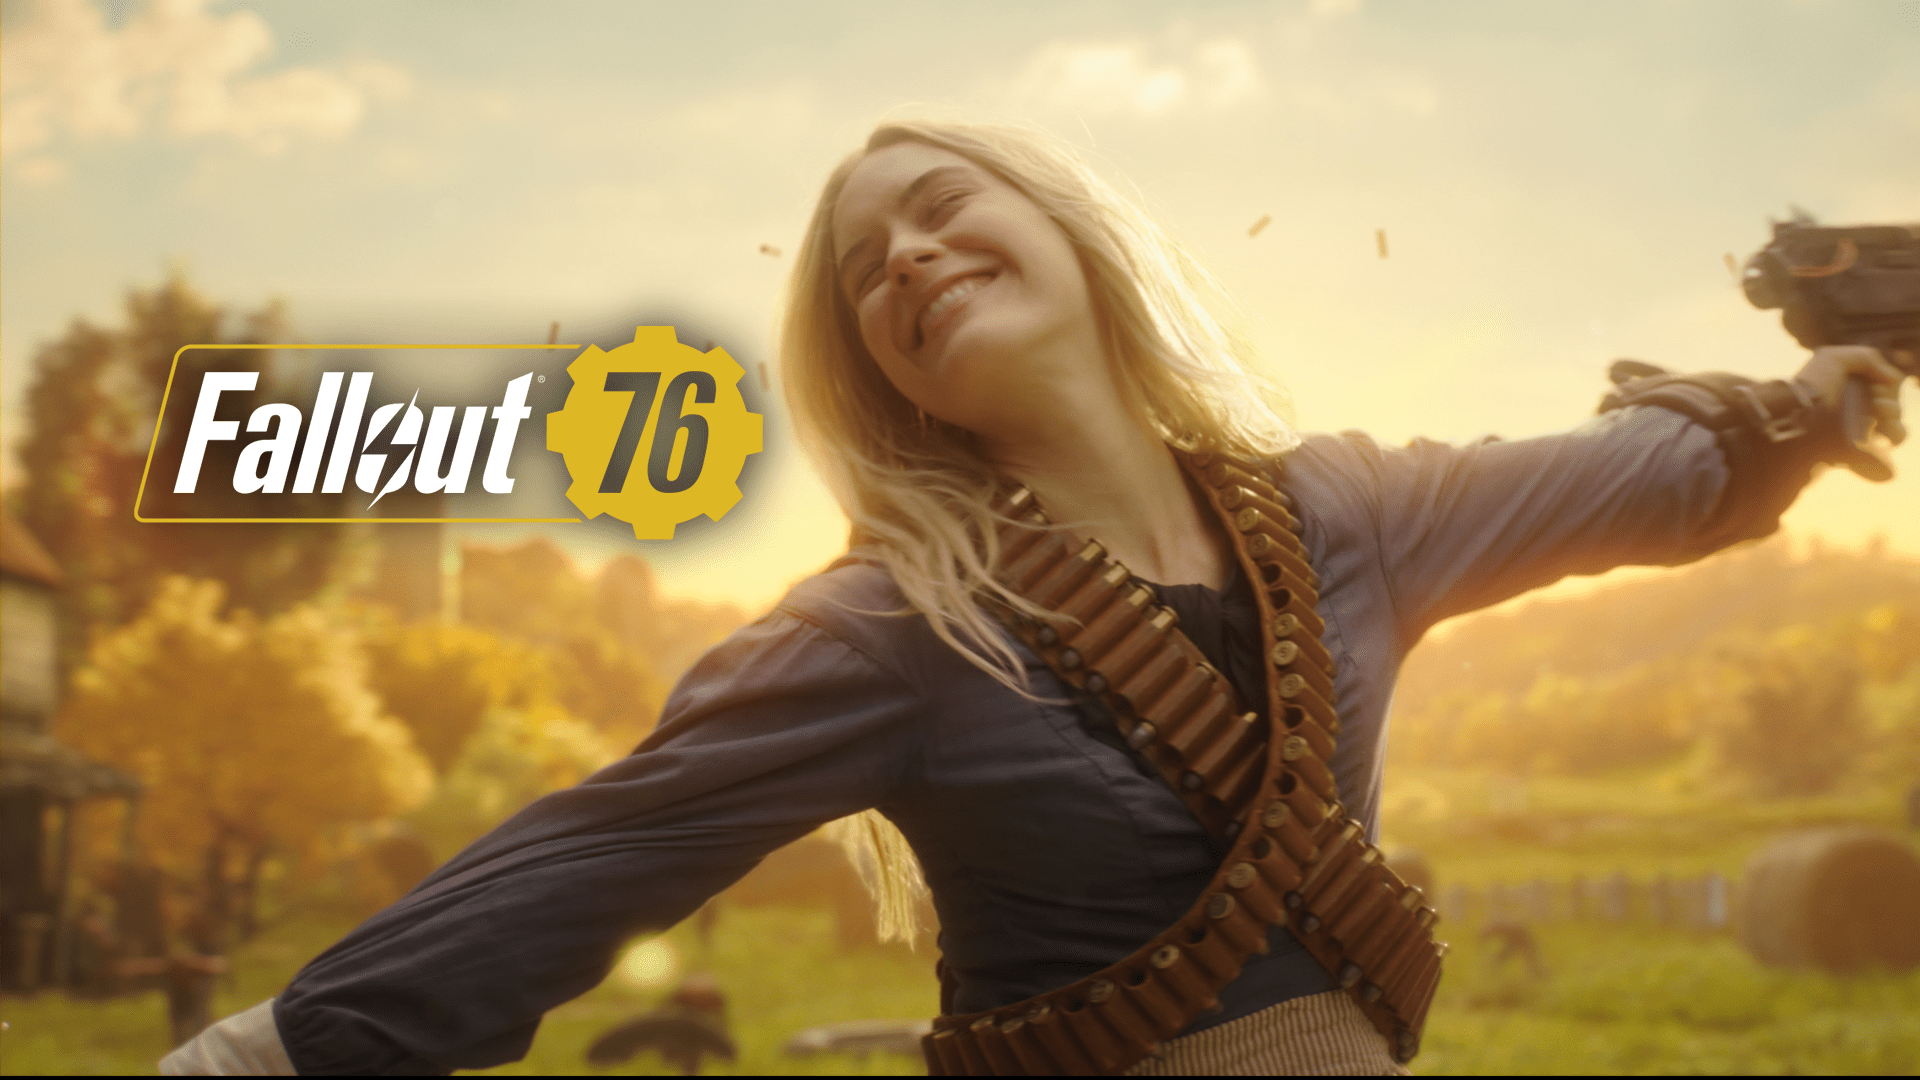 Fallout 76 Fallout 76 For Xbox One Xbox